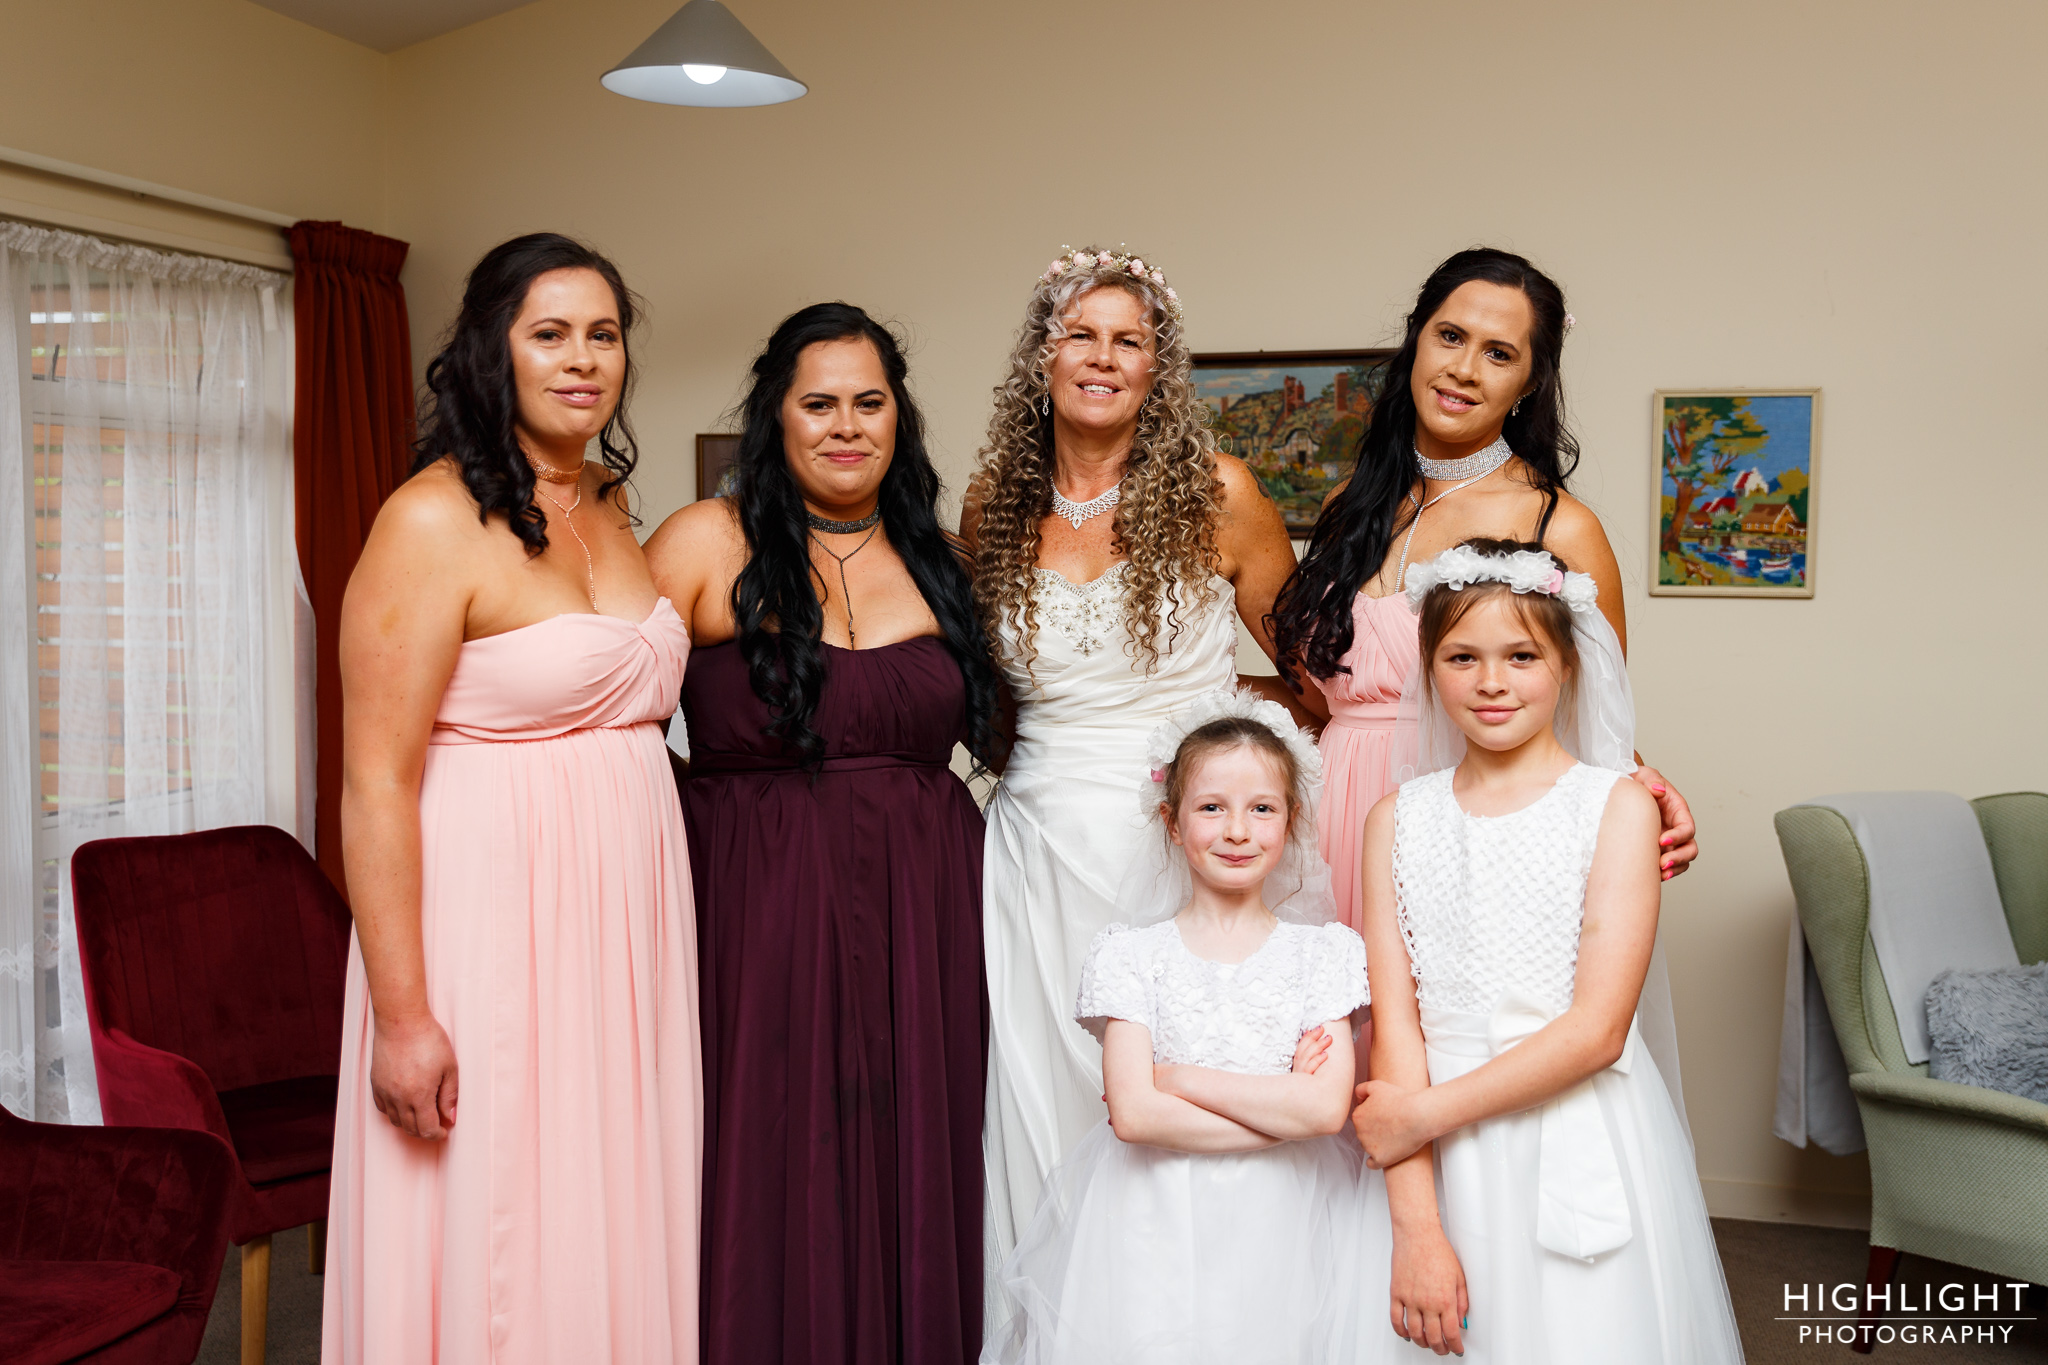 highlight_wedding_photography_palmerston_north_manawatu_chalet_wedding-26.jpg